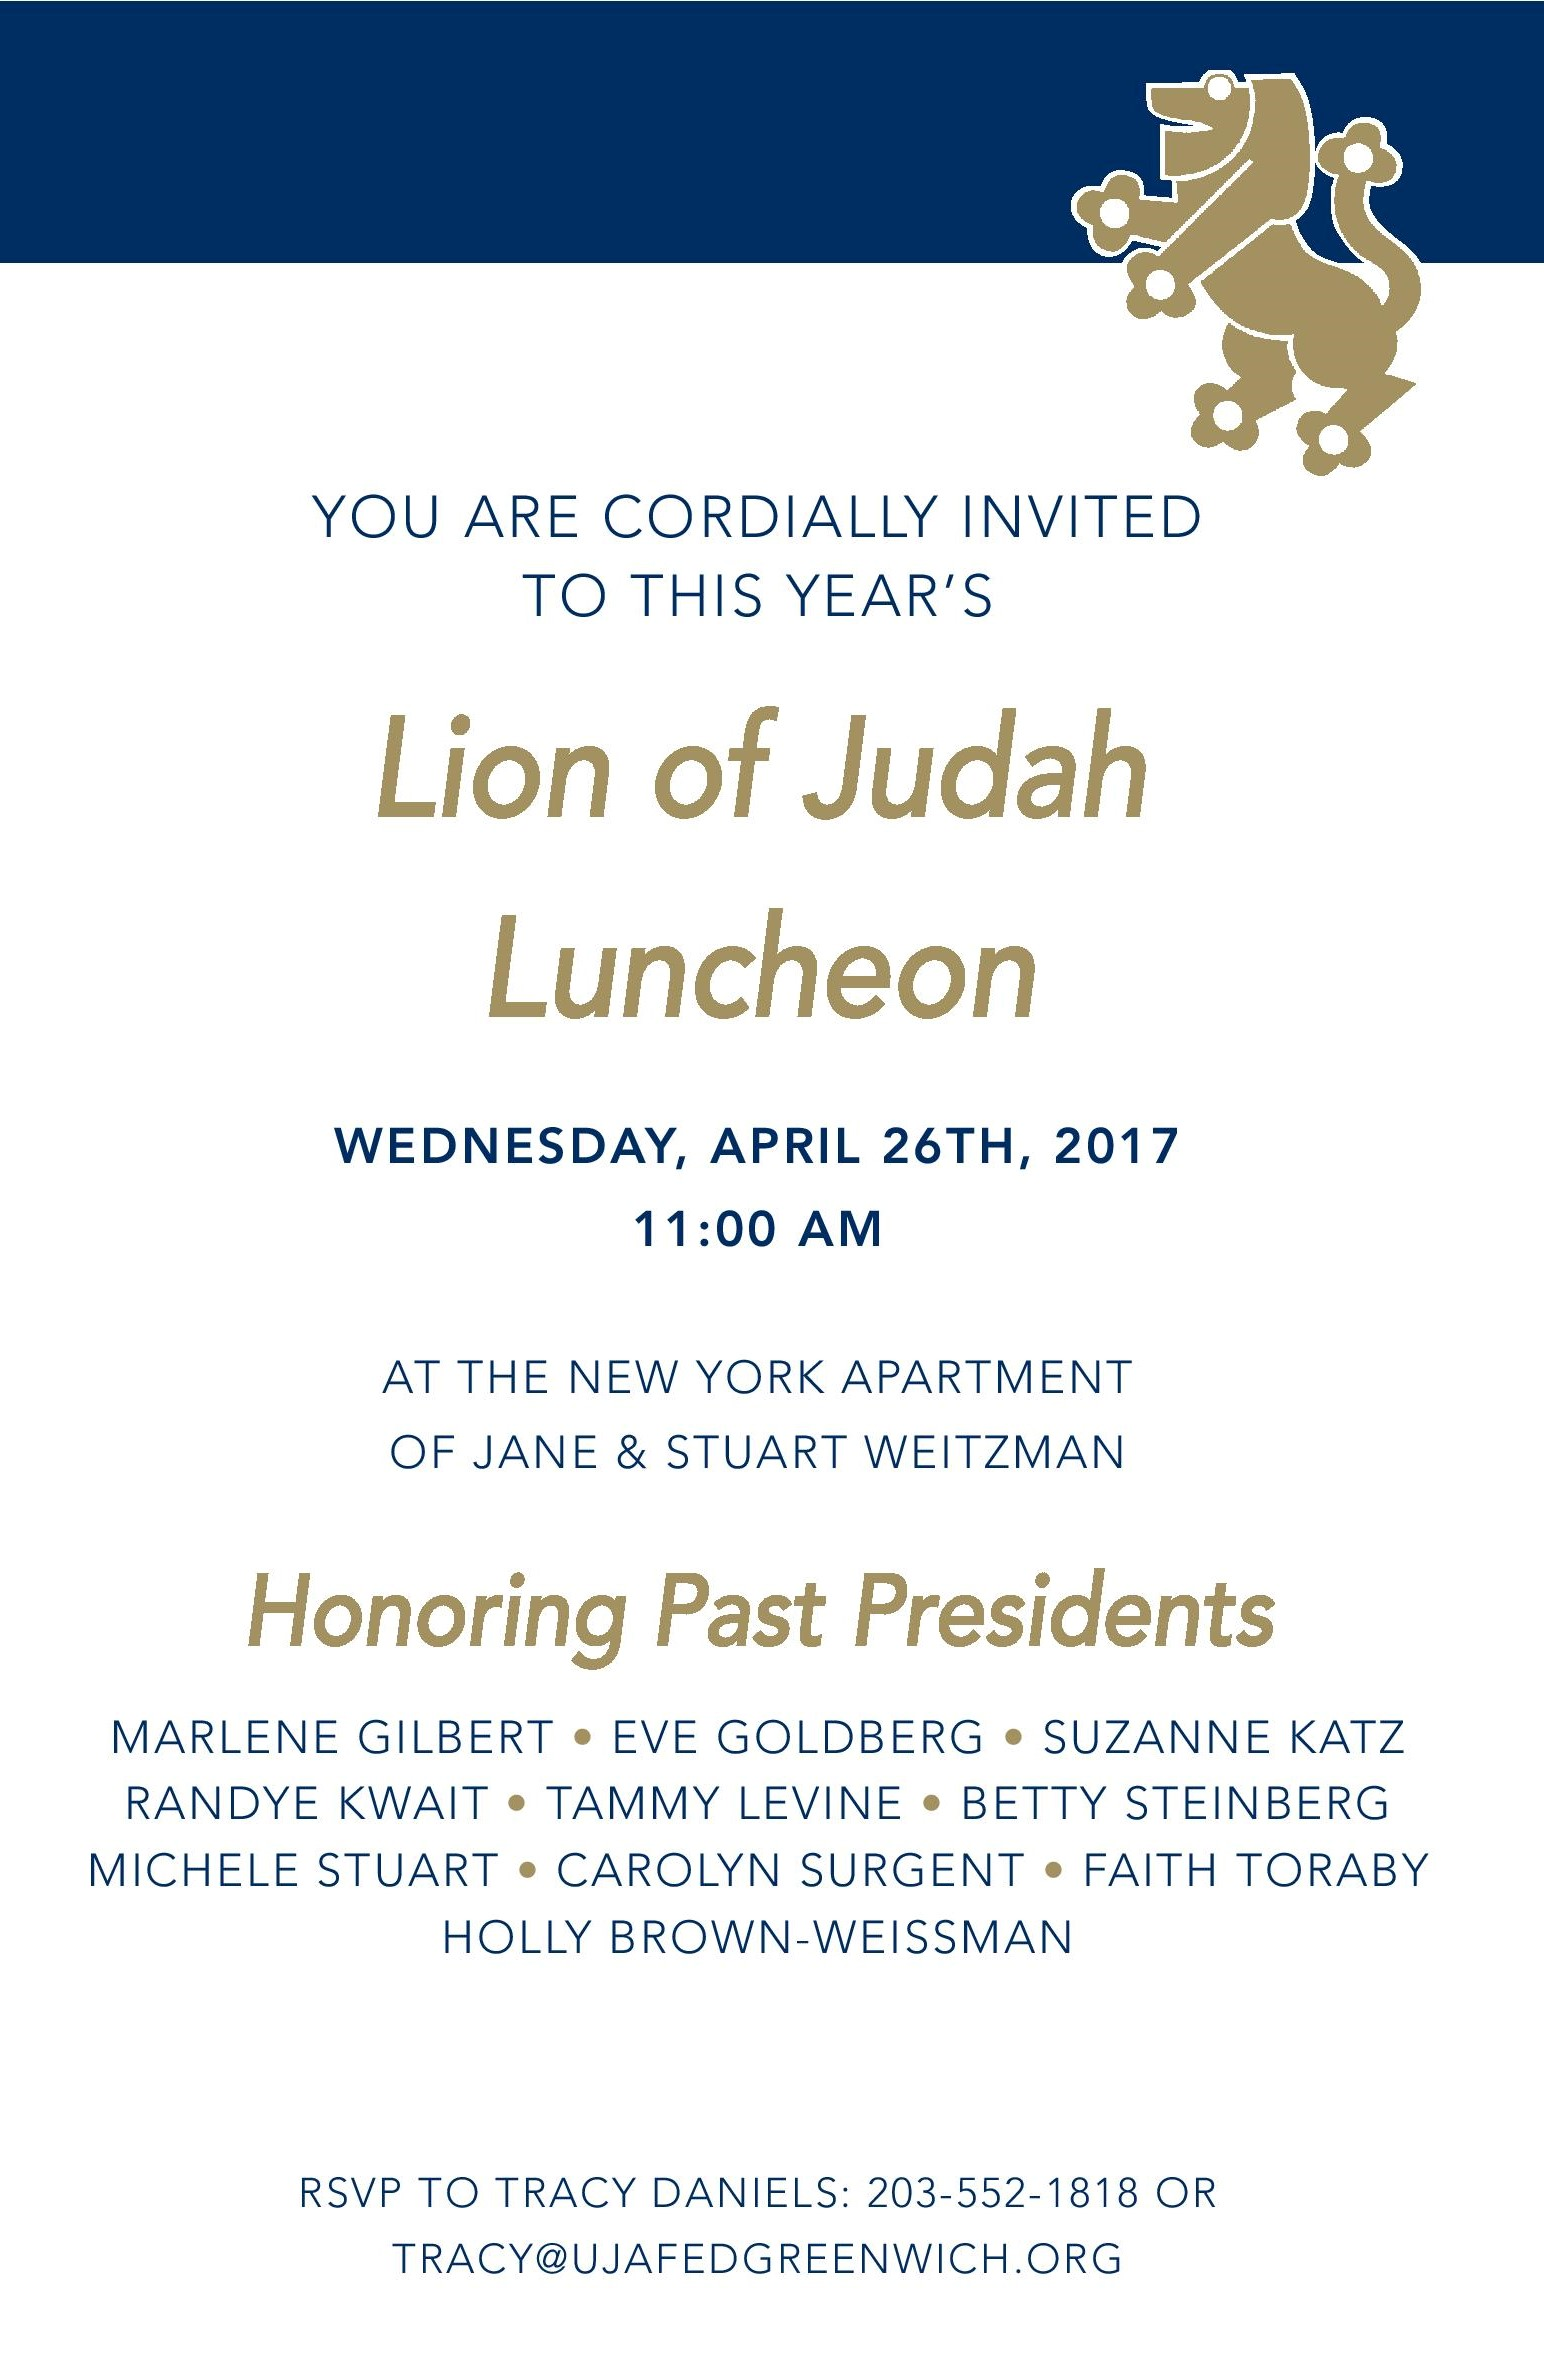 Lion of Judah 2017